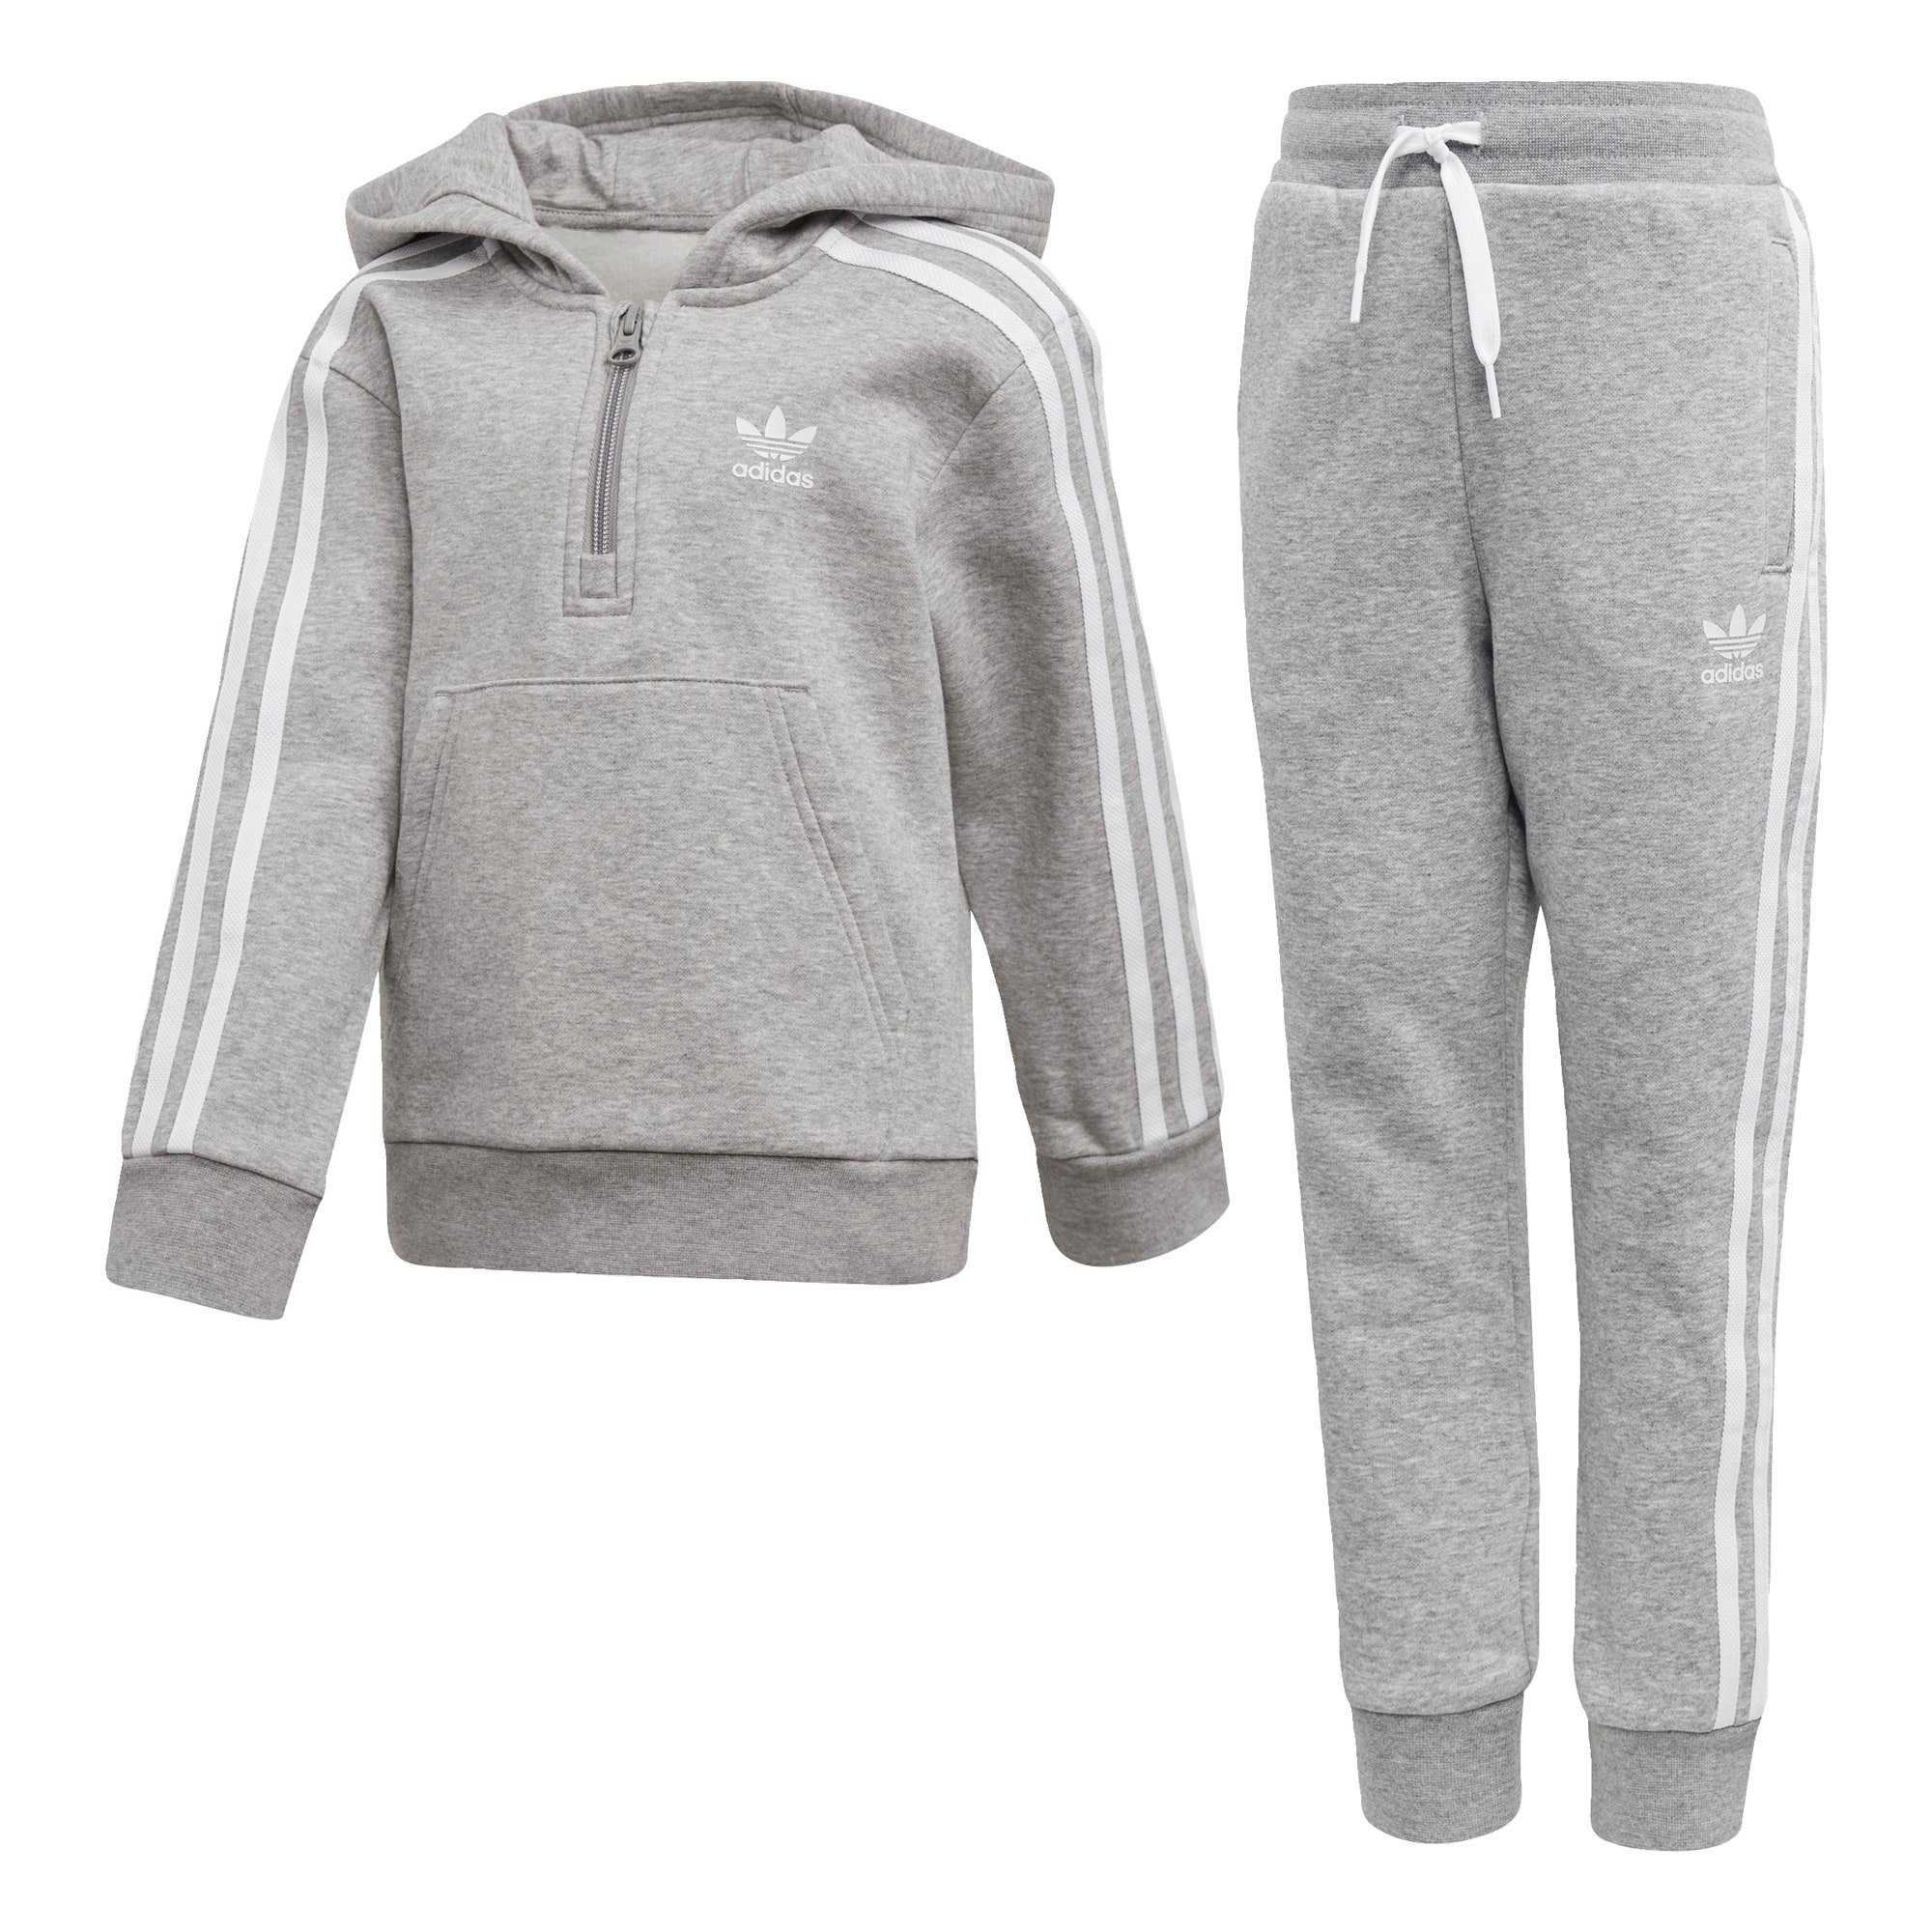 adidas Originals Trainingsanzug »Fleece Hoodie Set«, adicolor online kaufen | OTTO